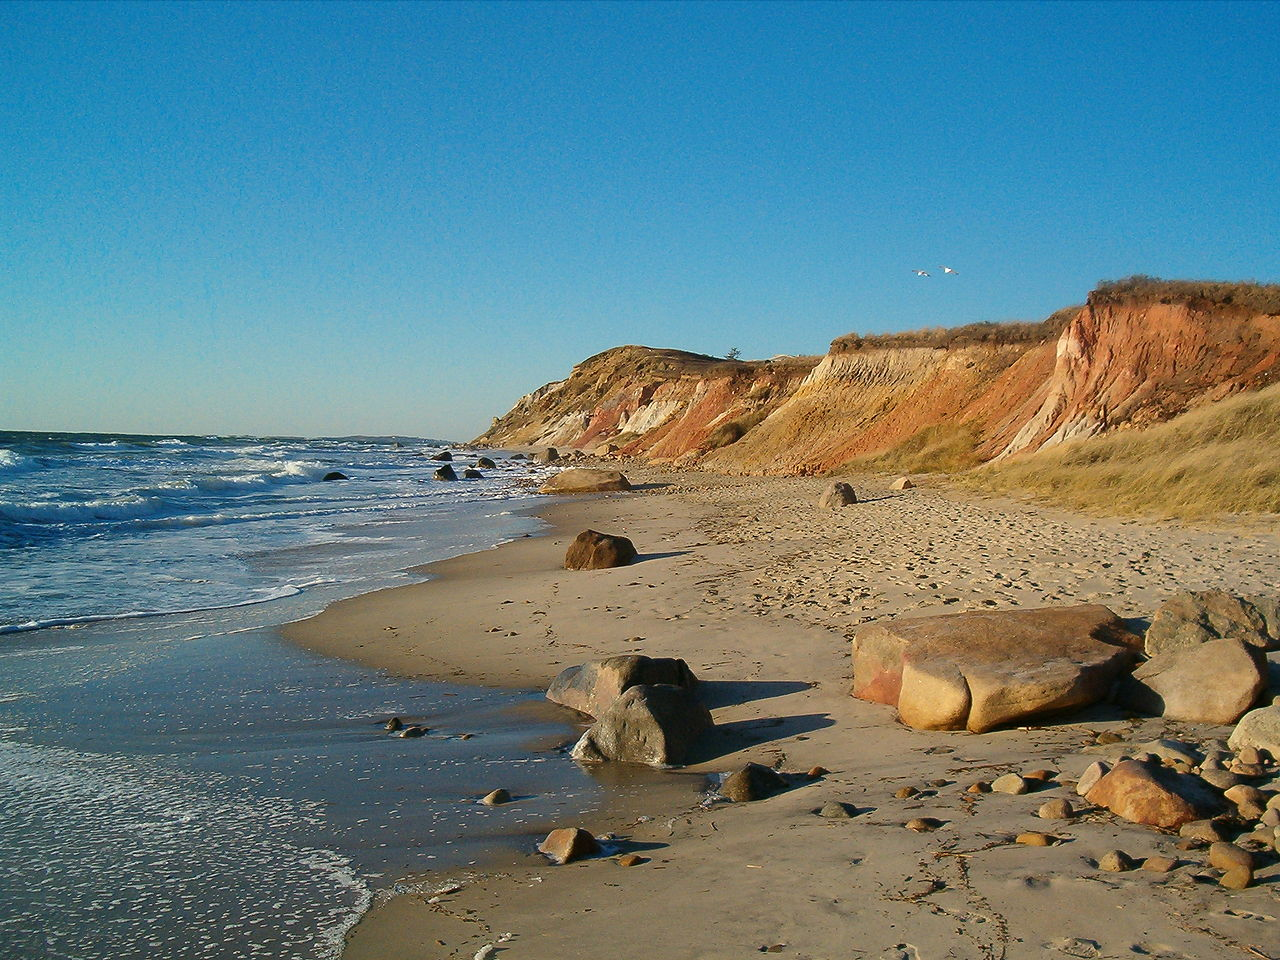 Aquinnah Wampanoag Tribe welcomes President Obama to homeland